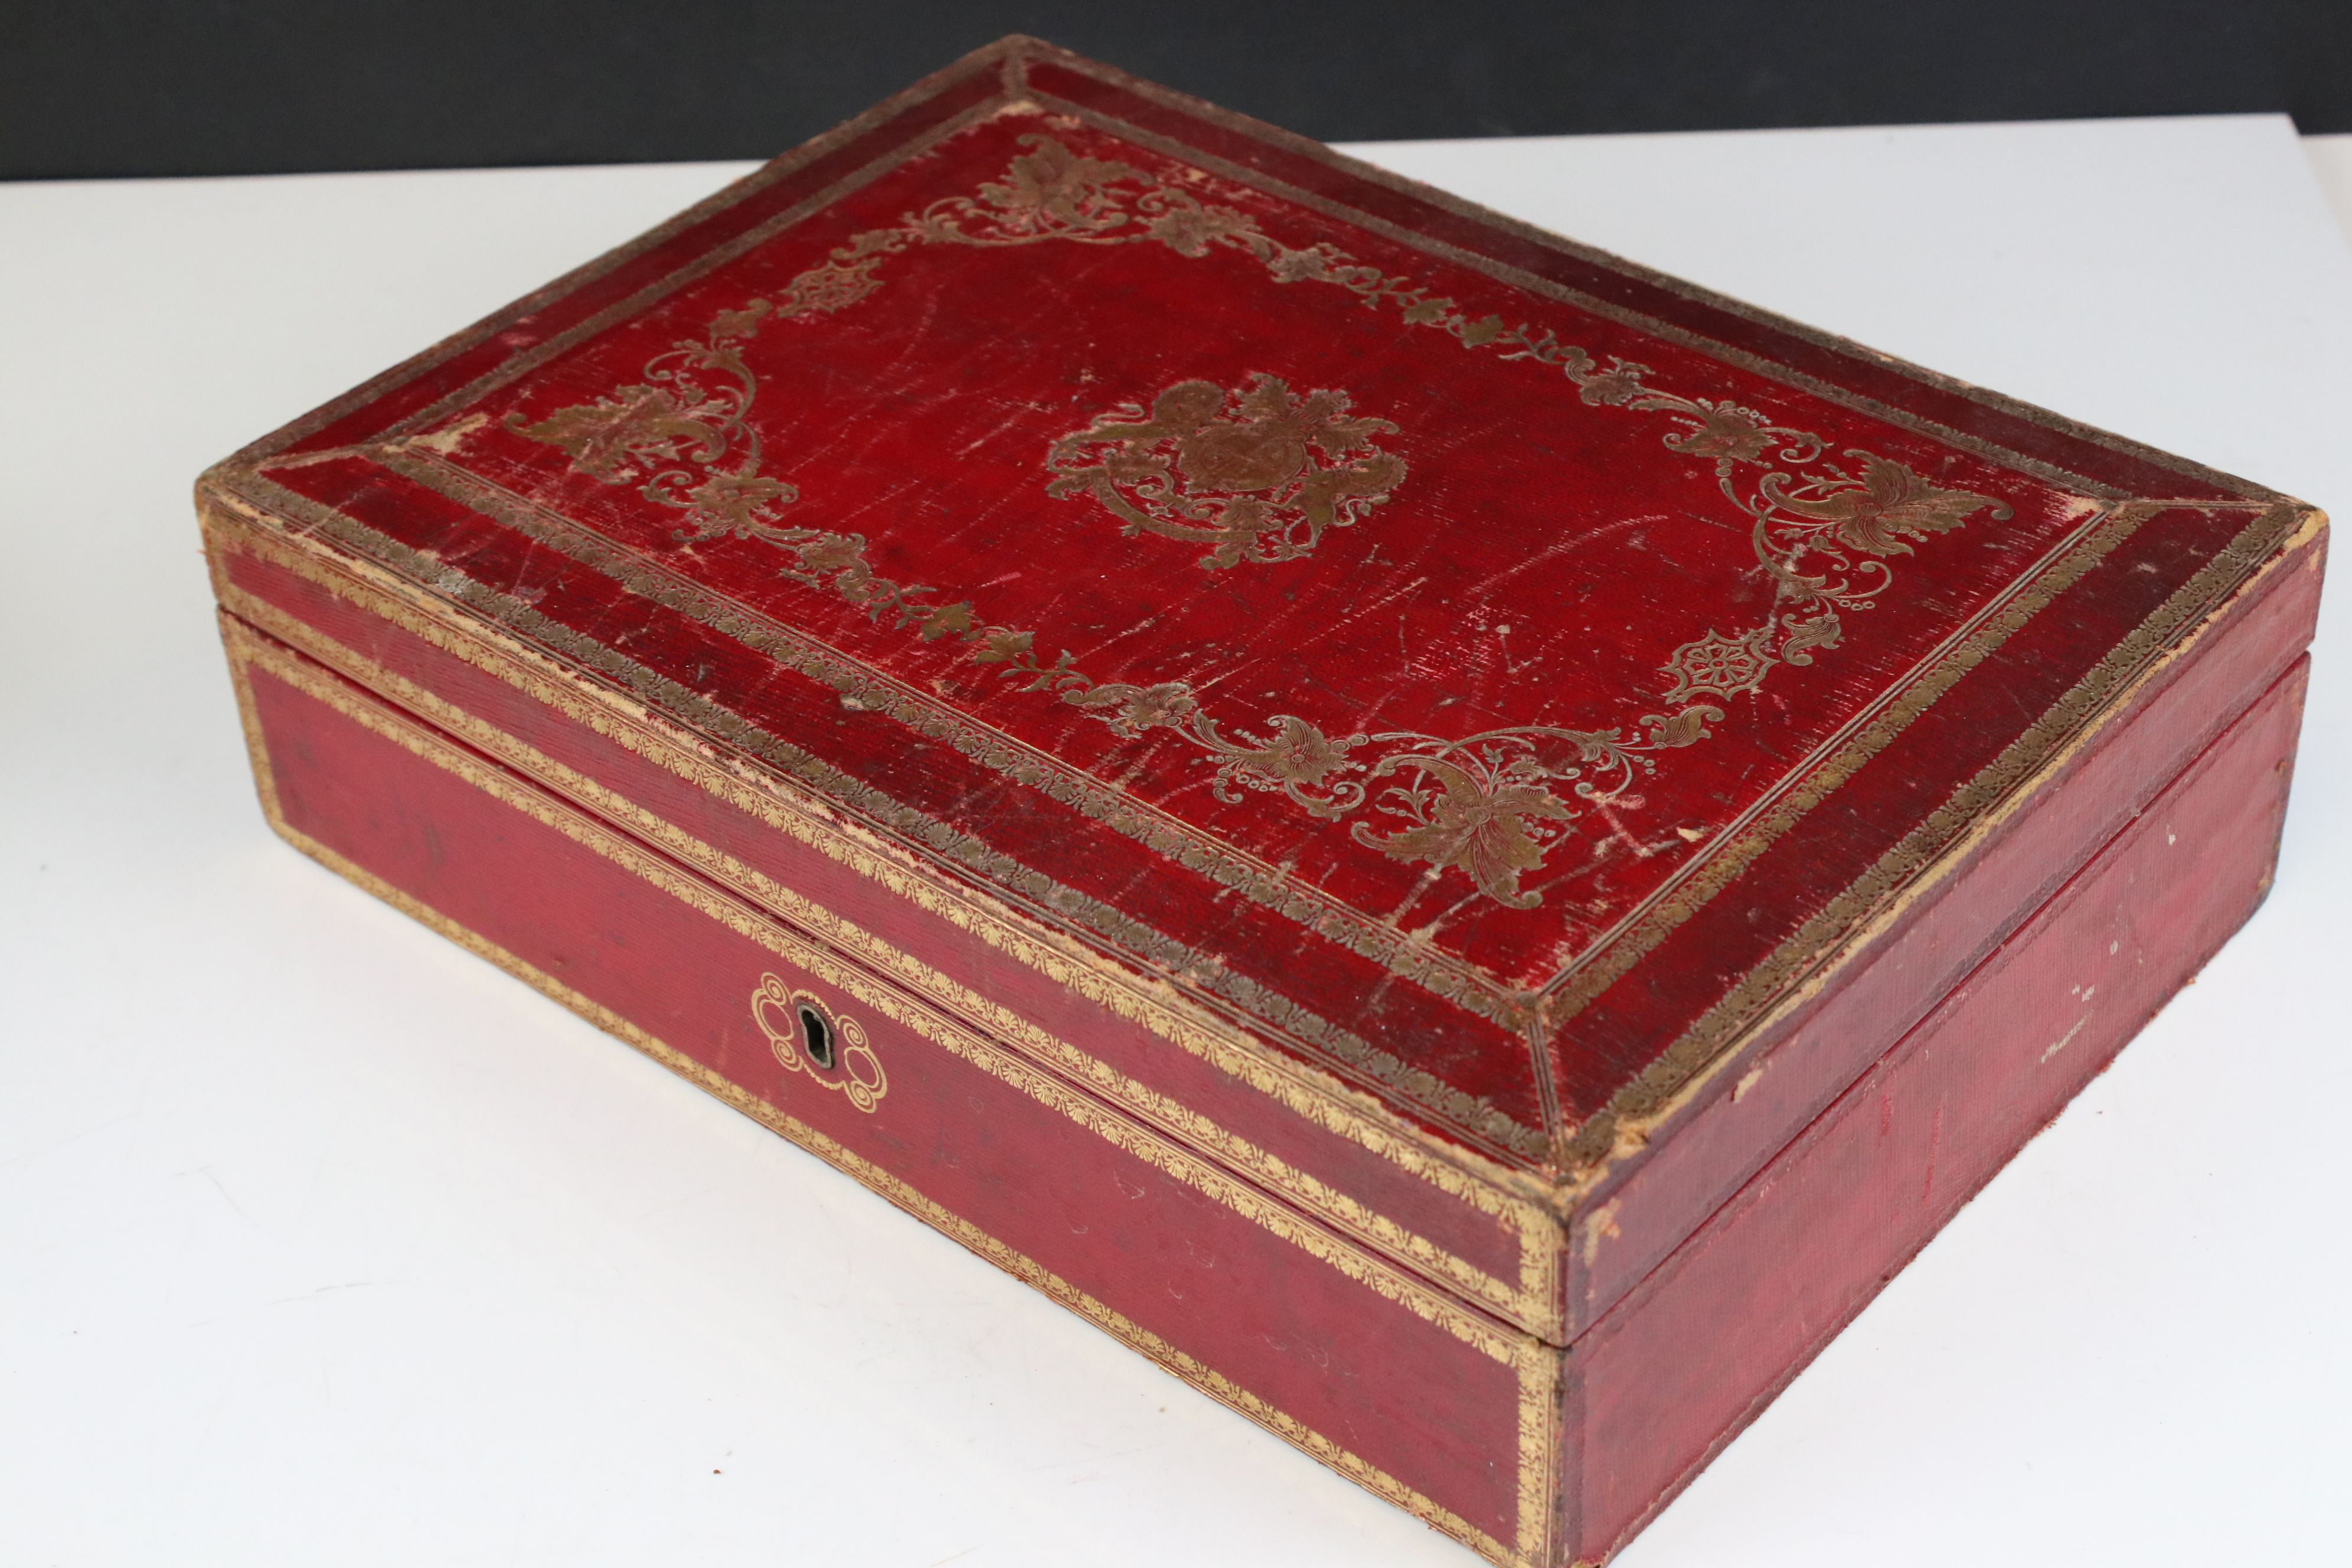 Late 19th / Early 20th century Tooled Red Leather and Gilt Box with blue lined interior containing a - Image 4 of 5